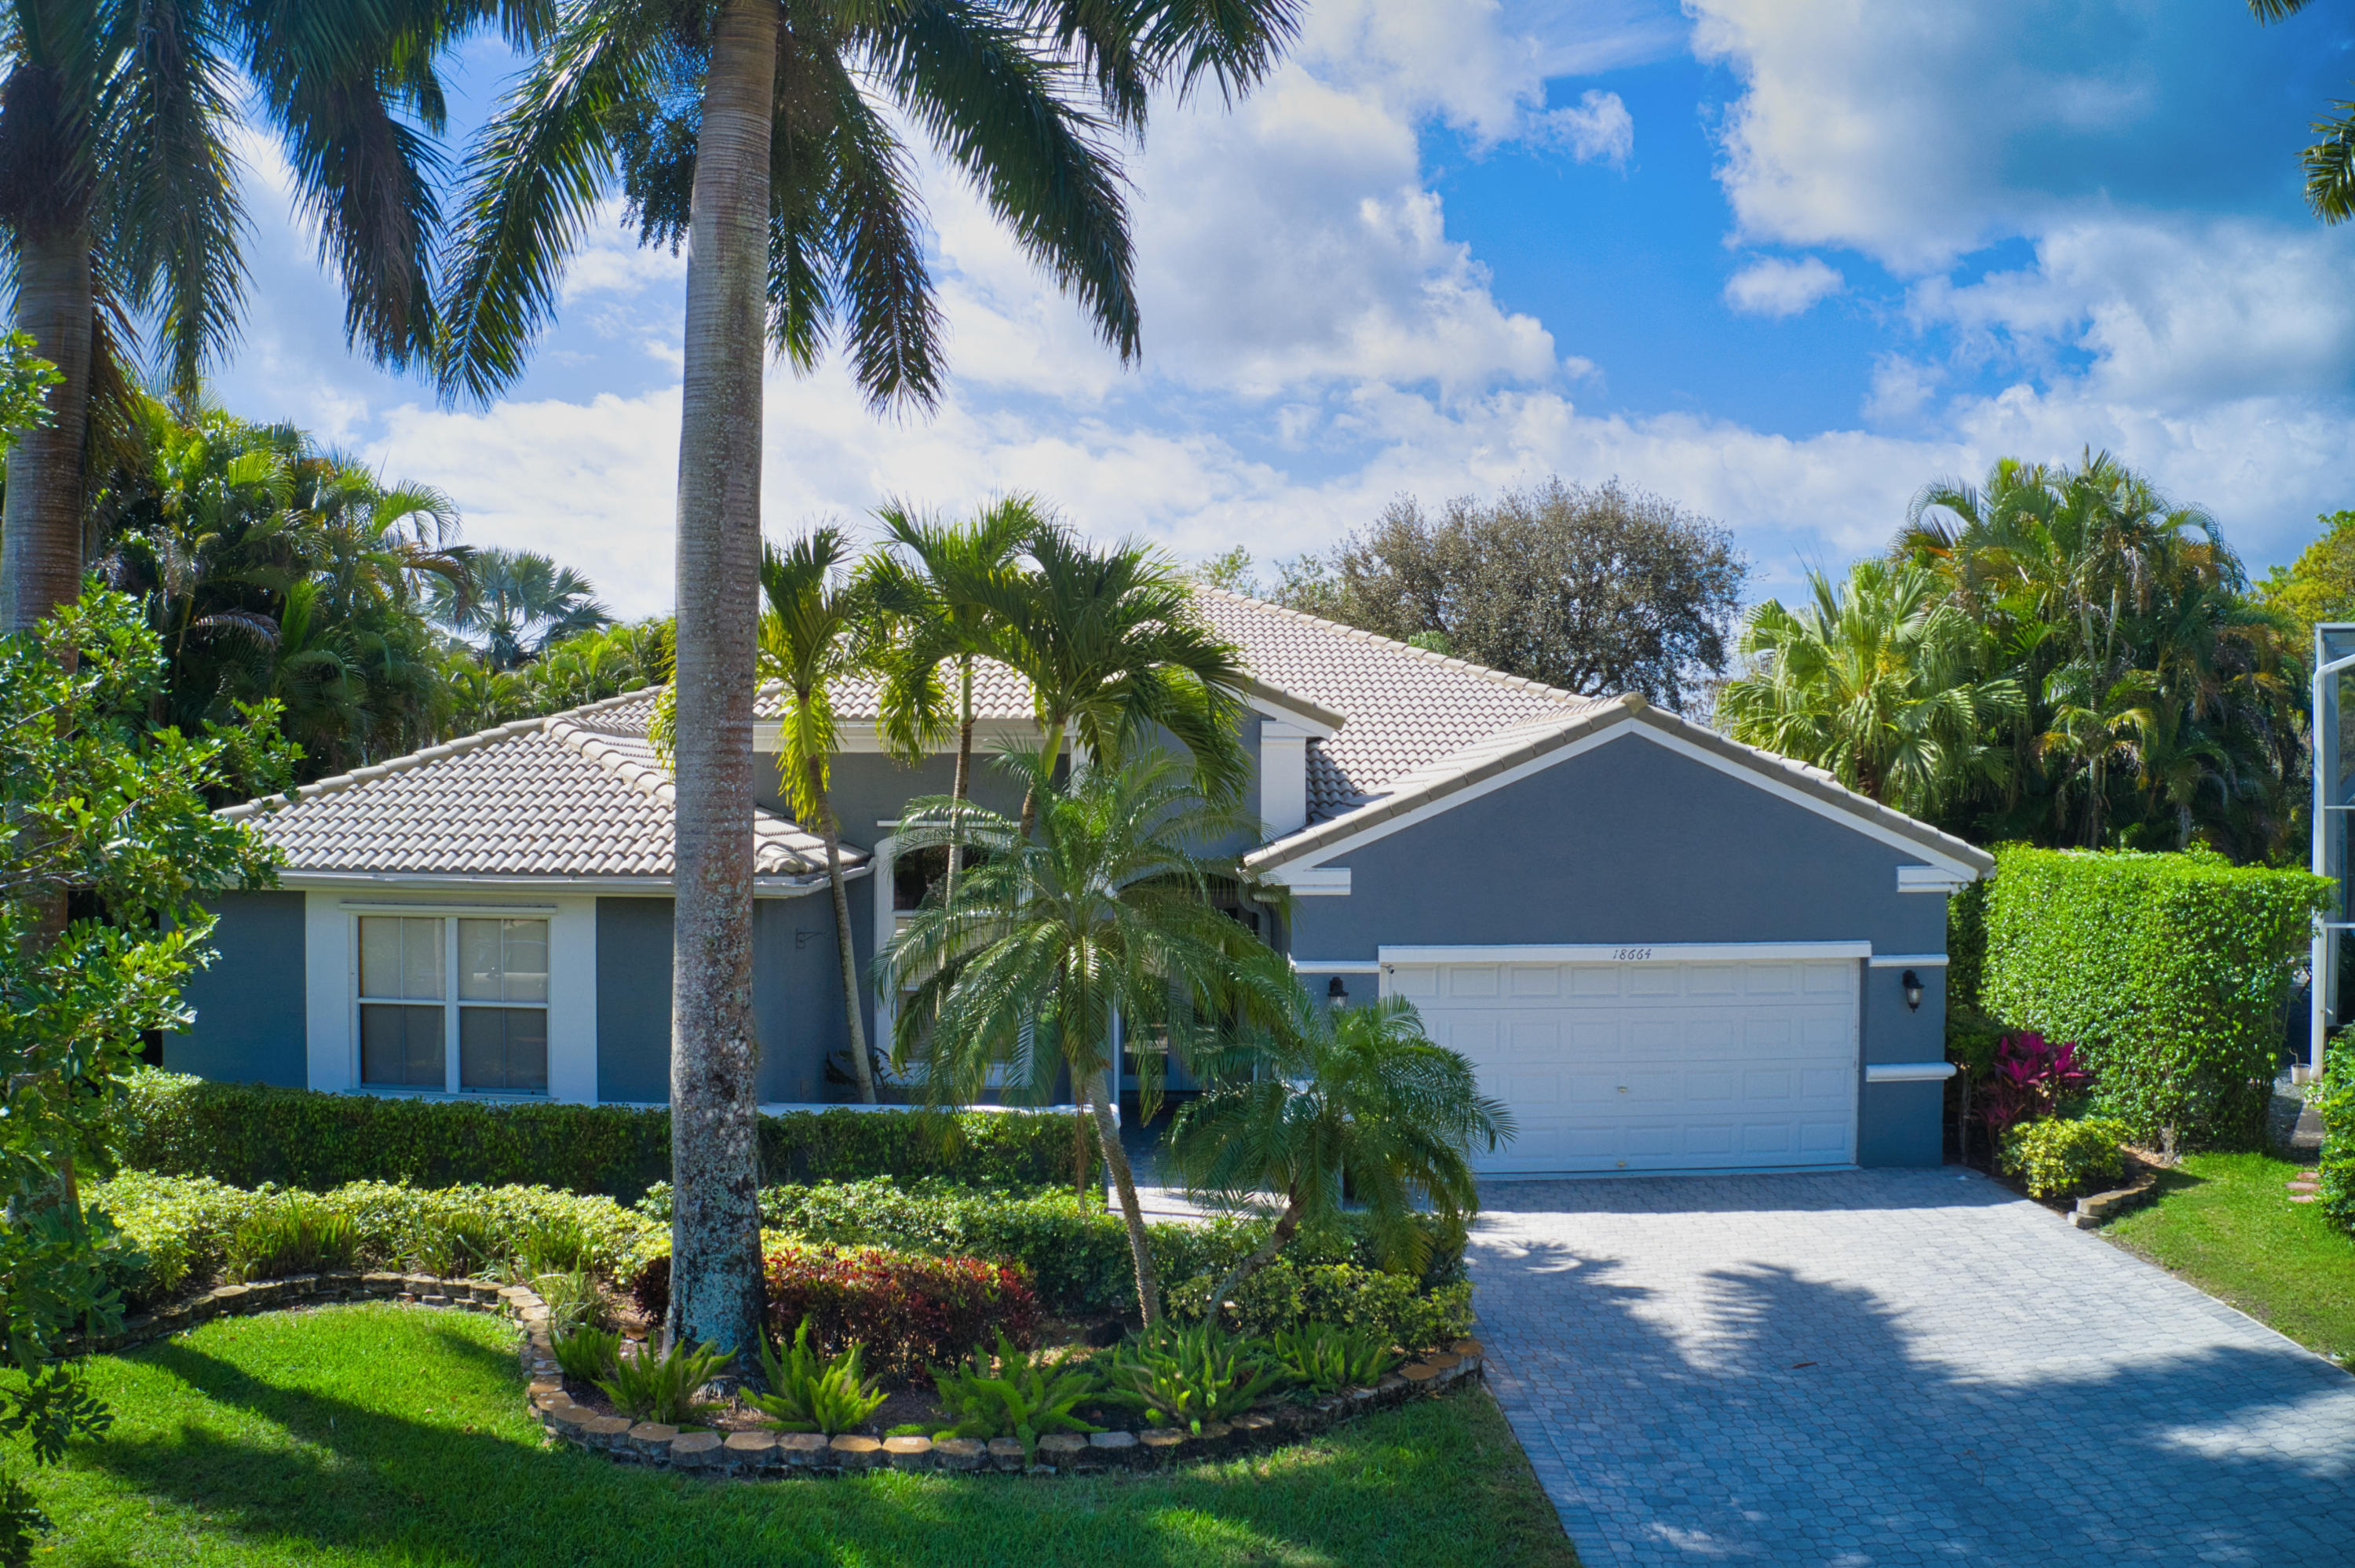 Home for sale in The Shores Boca Raton Florida